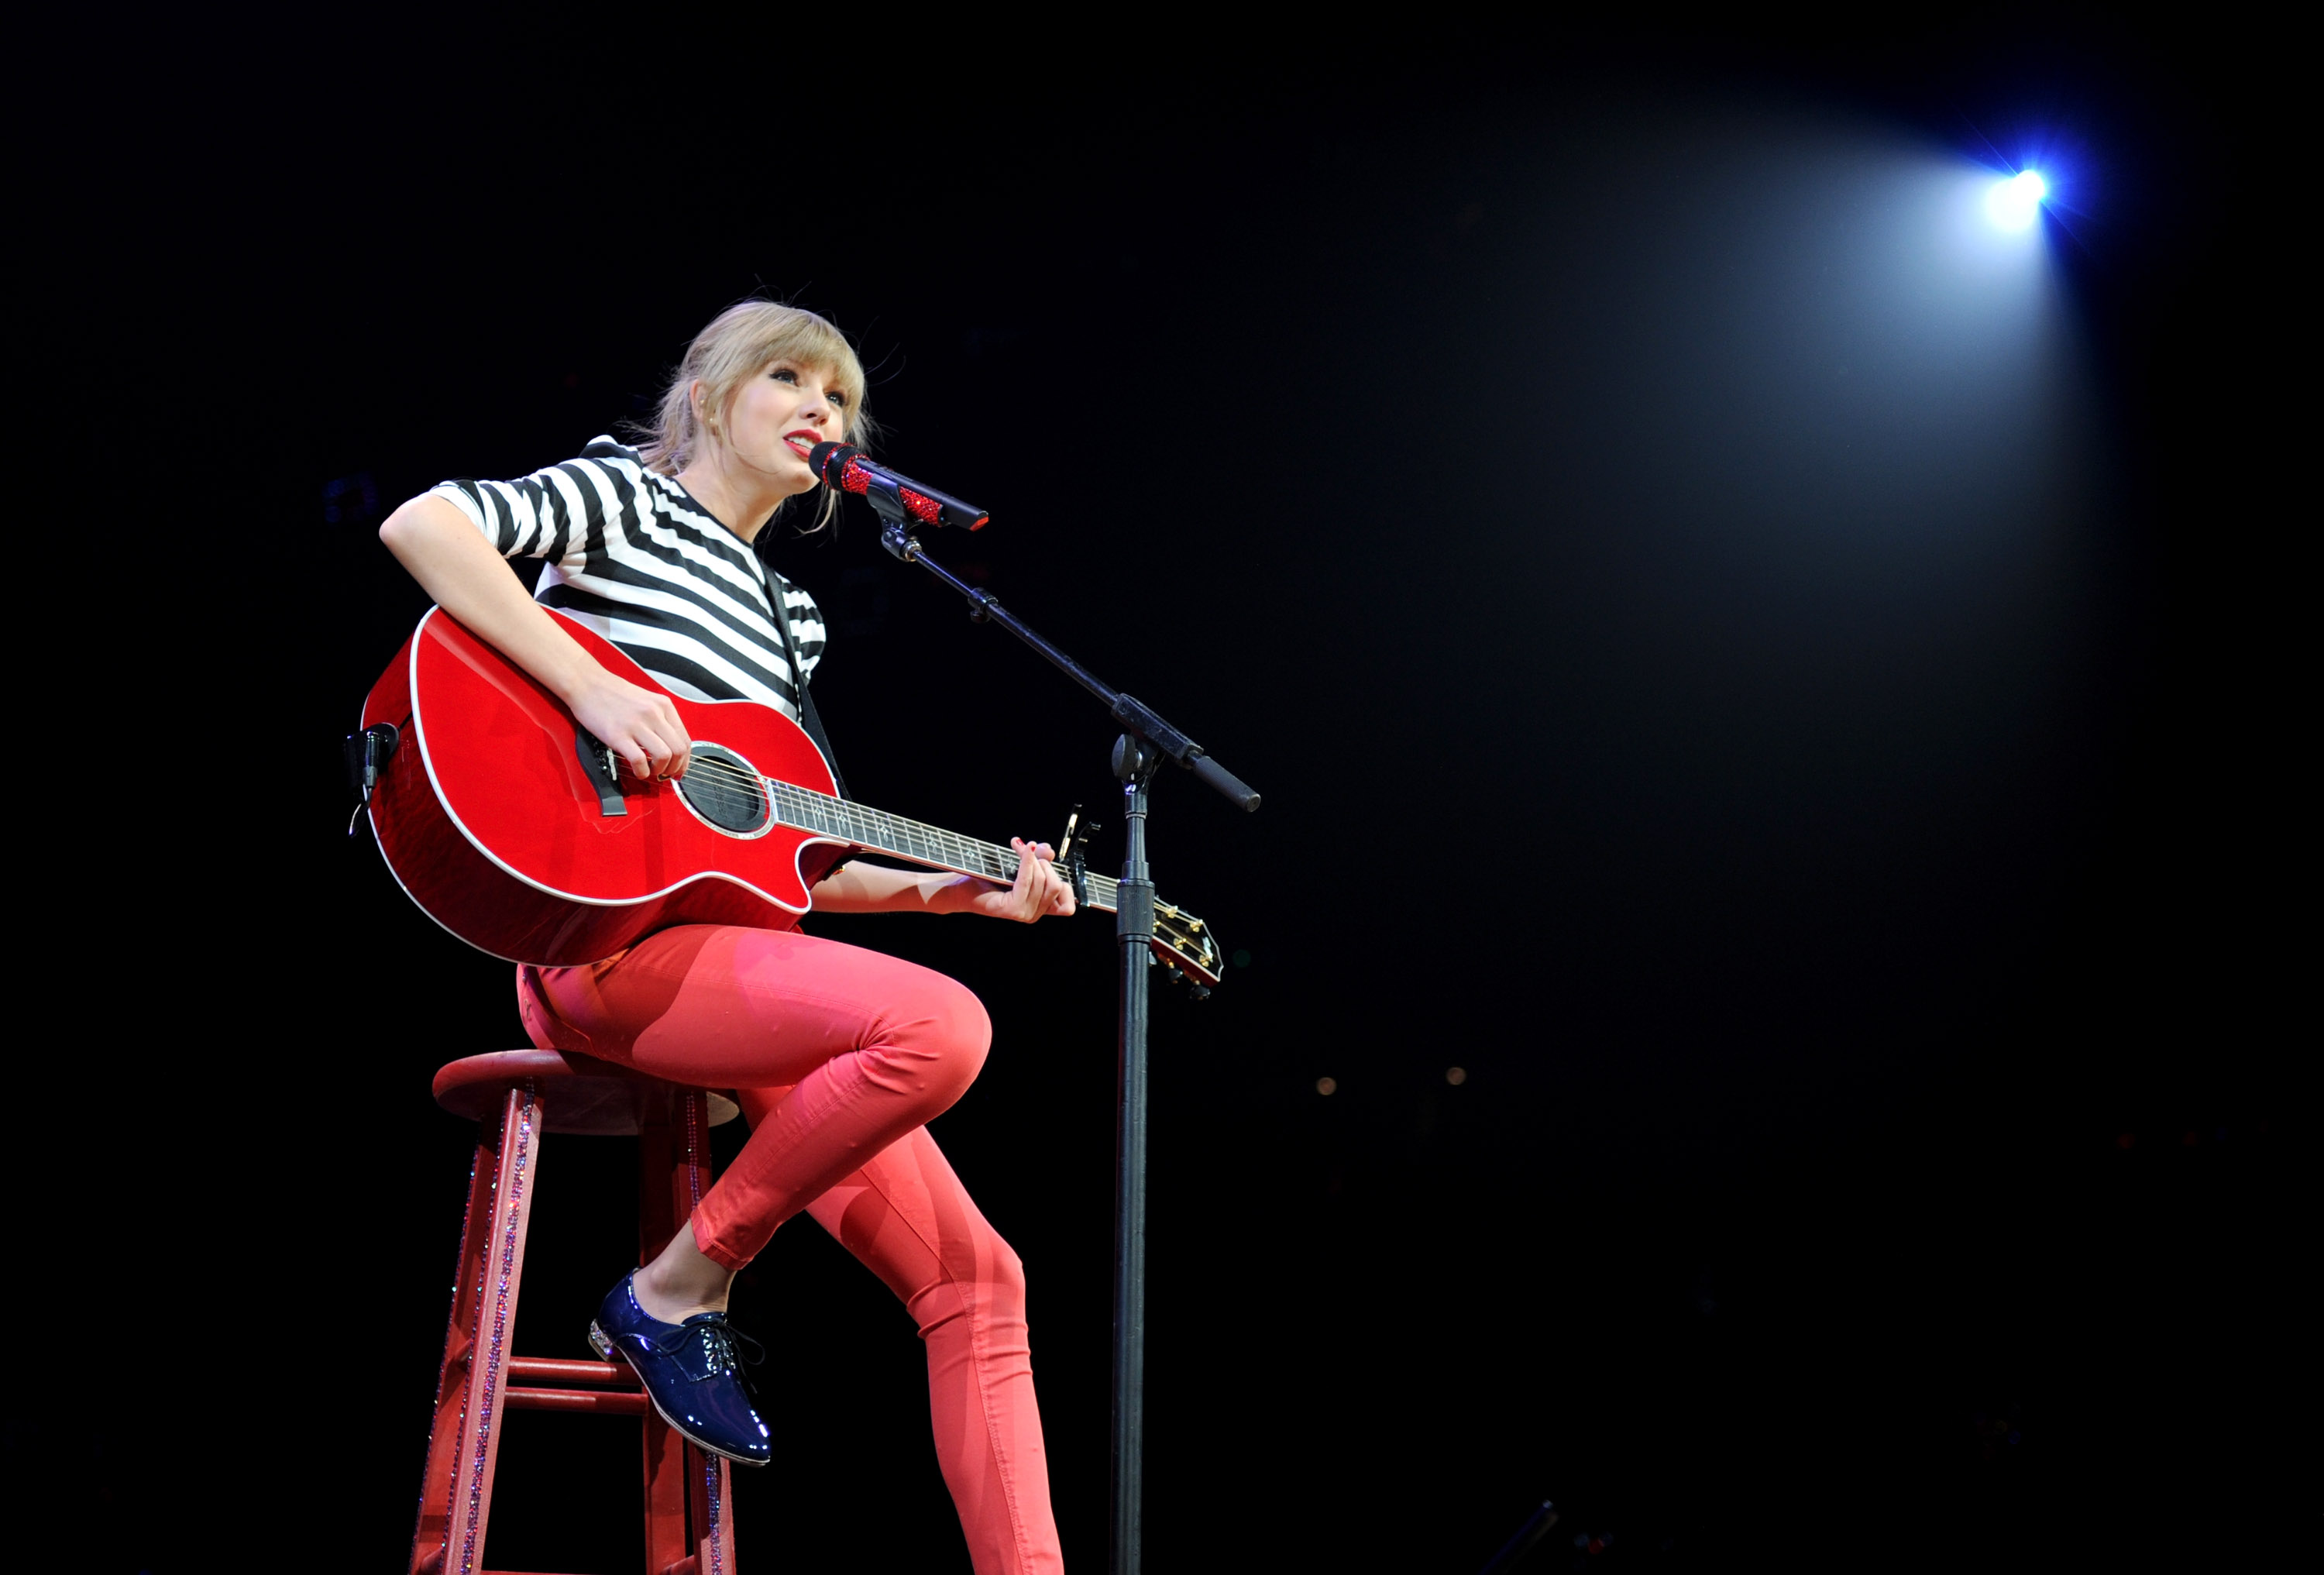 Taylor Swift Full HD Wallpaper and Background Image ...Taylor Swift Acoustic Guitar Wallpaper